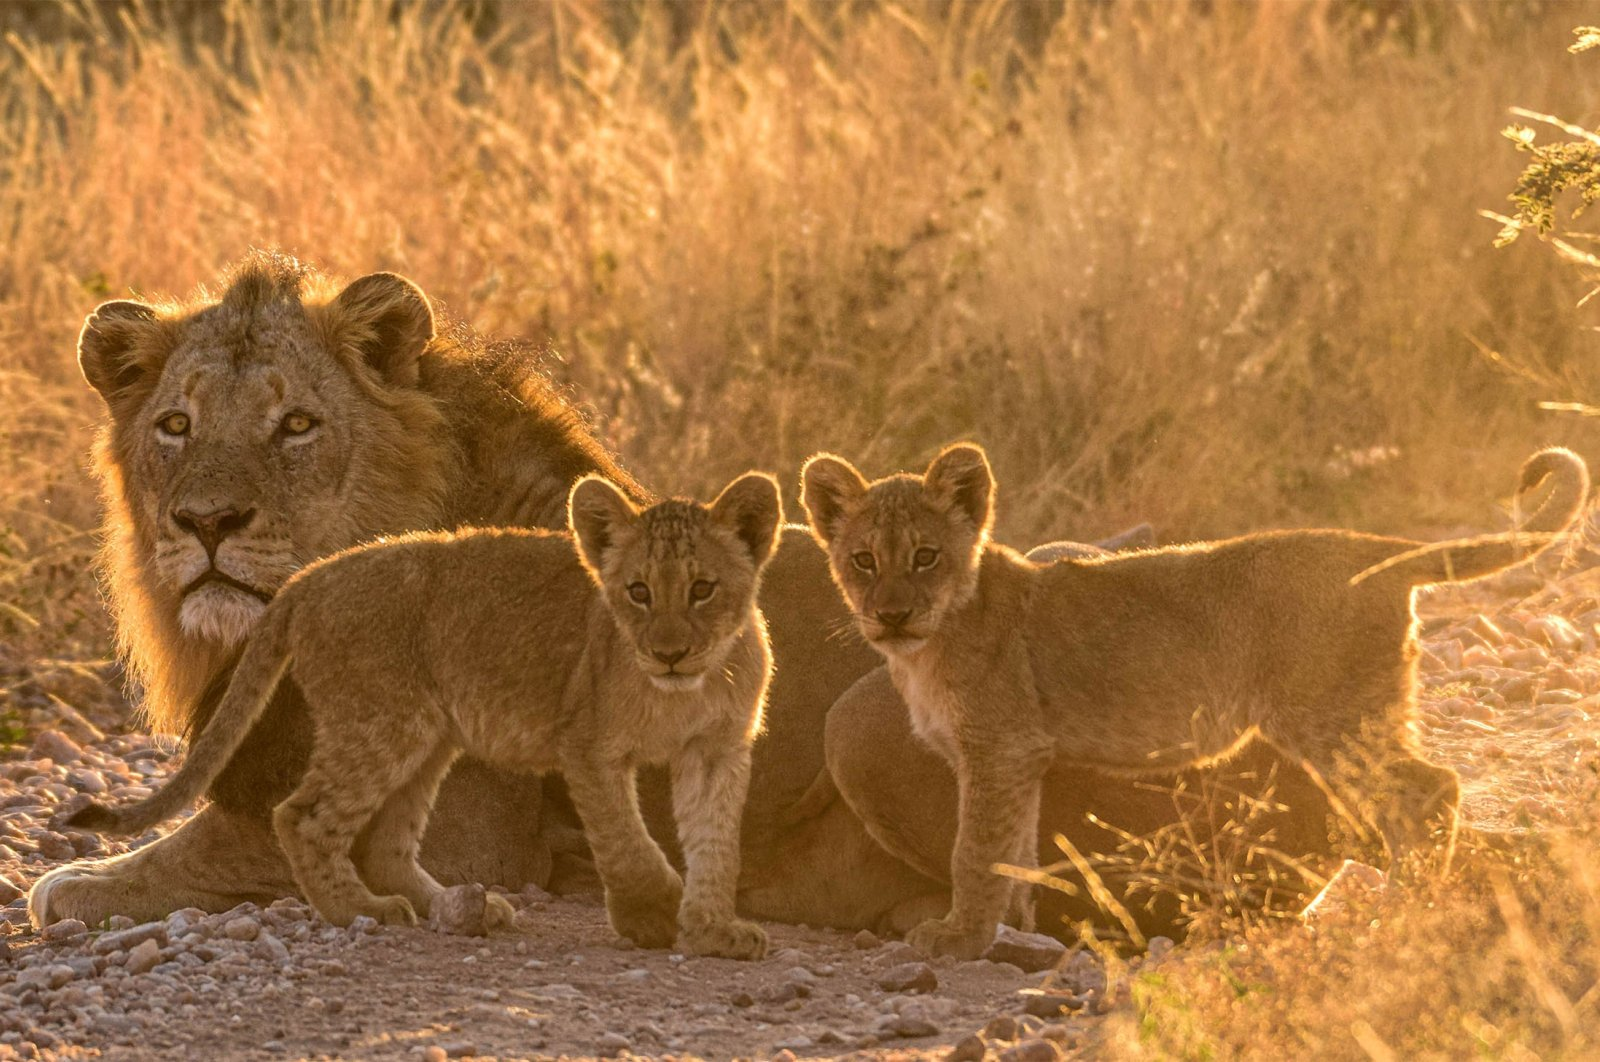 World Animal Protection warns of alarming decreases in wild African lion populations on World Lions Day, Aug. 10, 2021. (Shutterstock Photo)